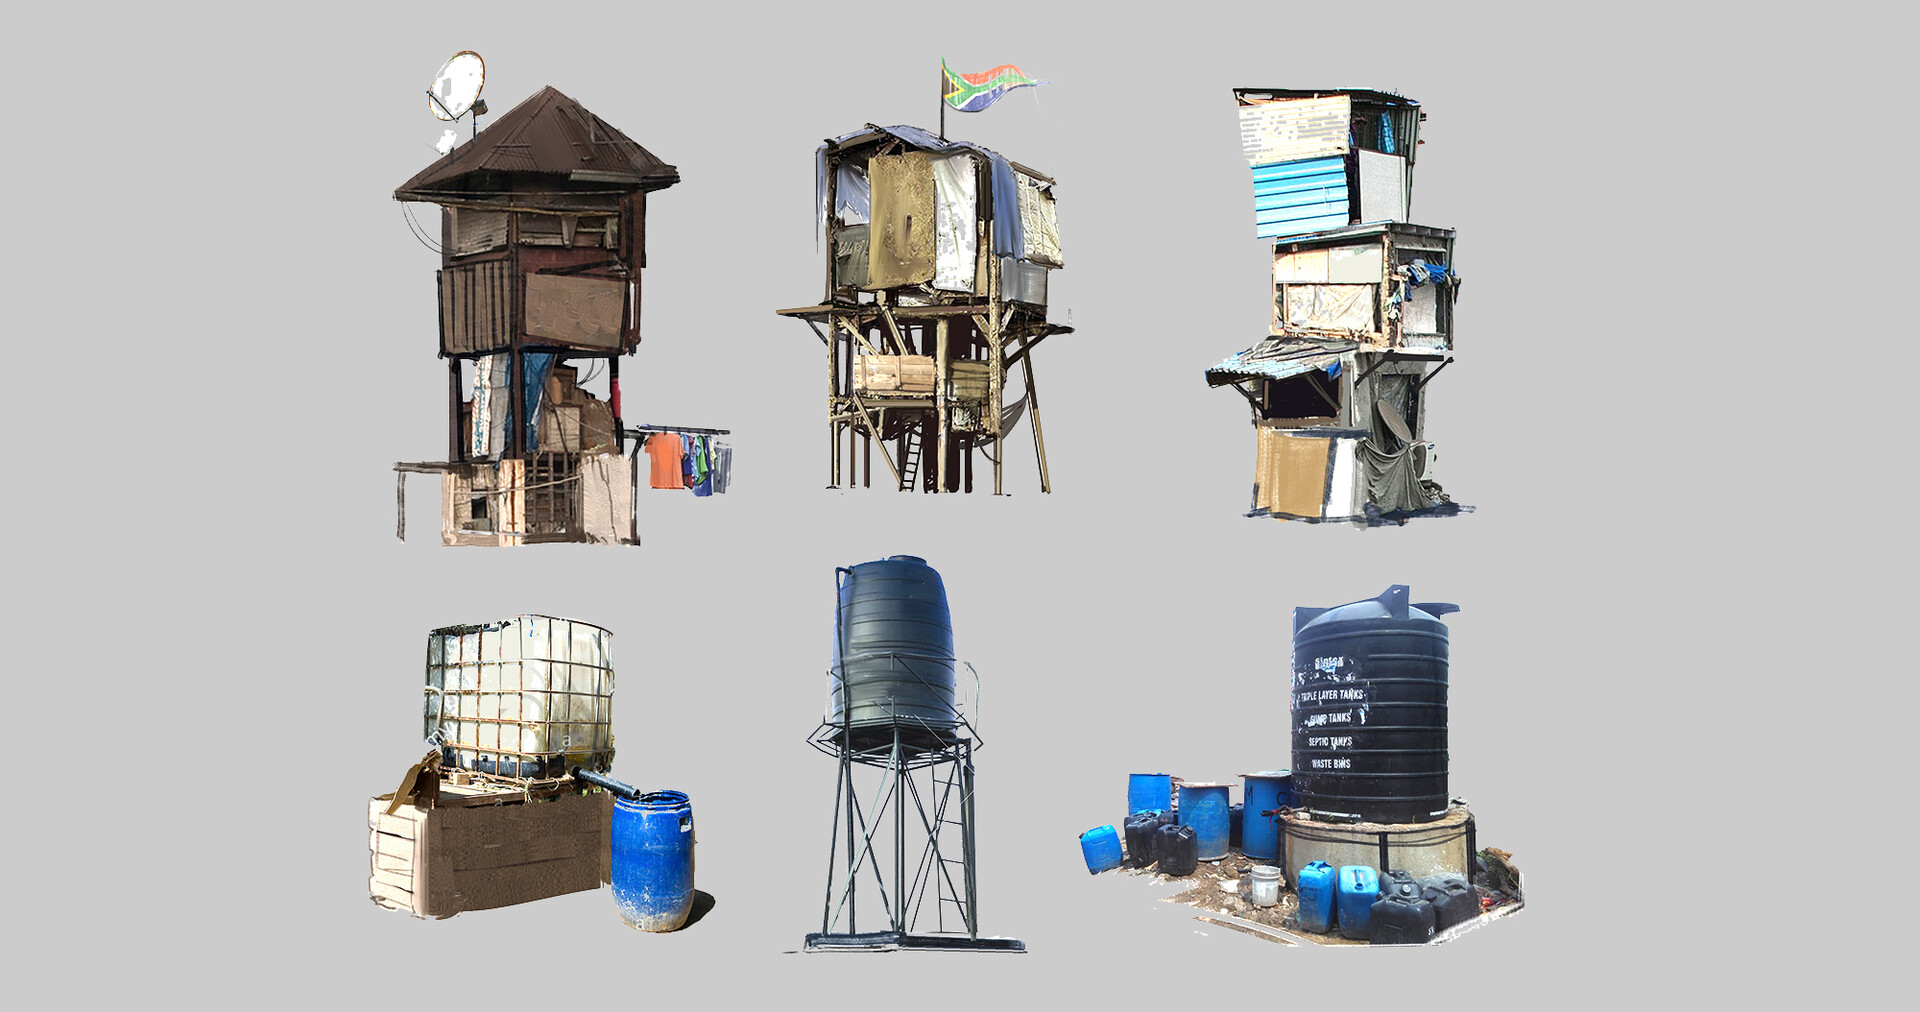 Jonas hassibi gorillas slums props tower 01